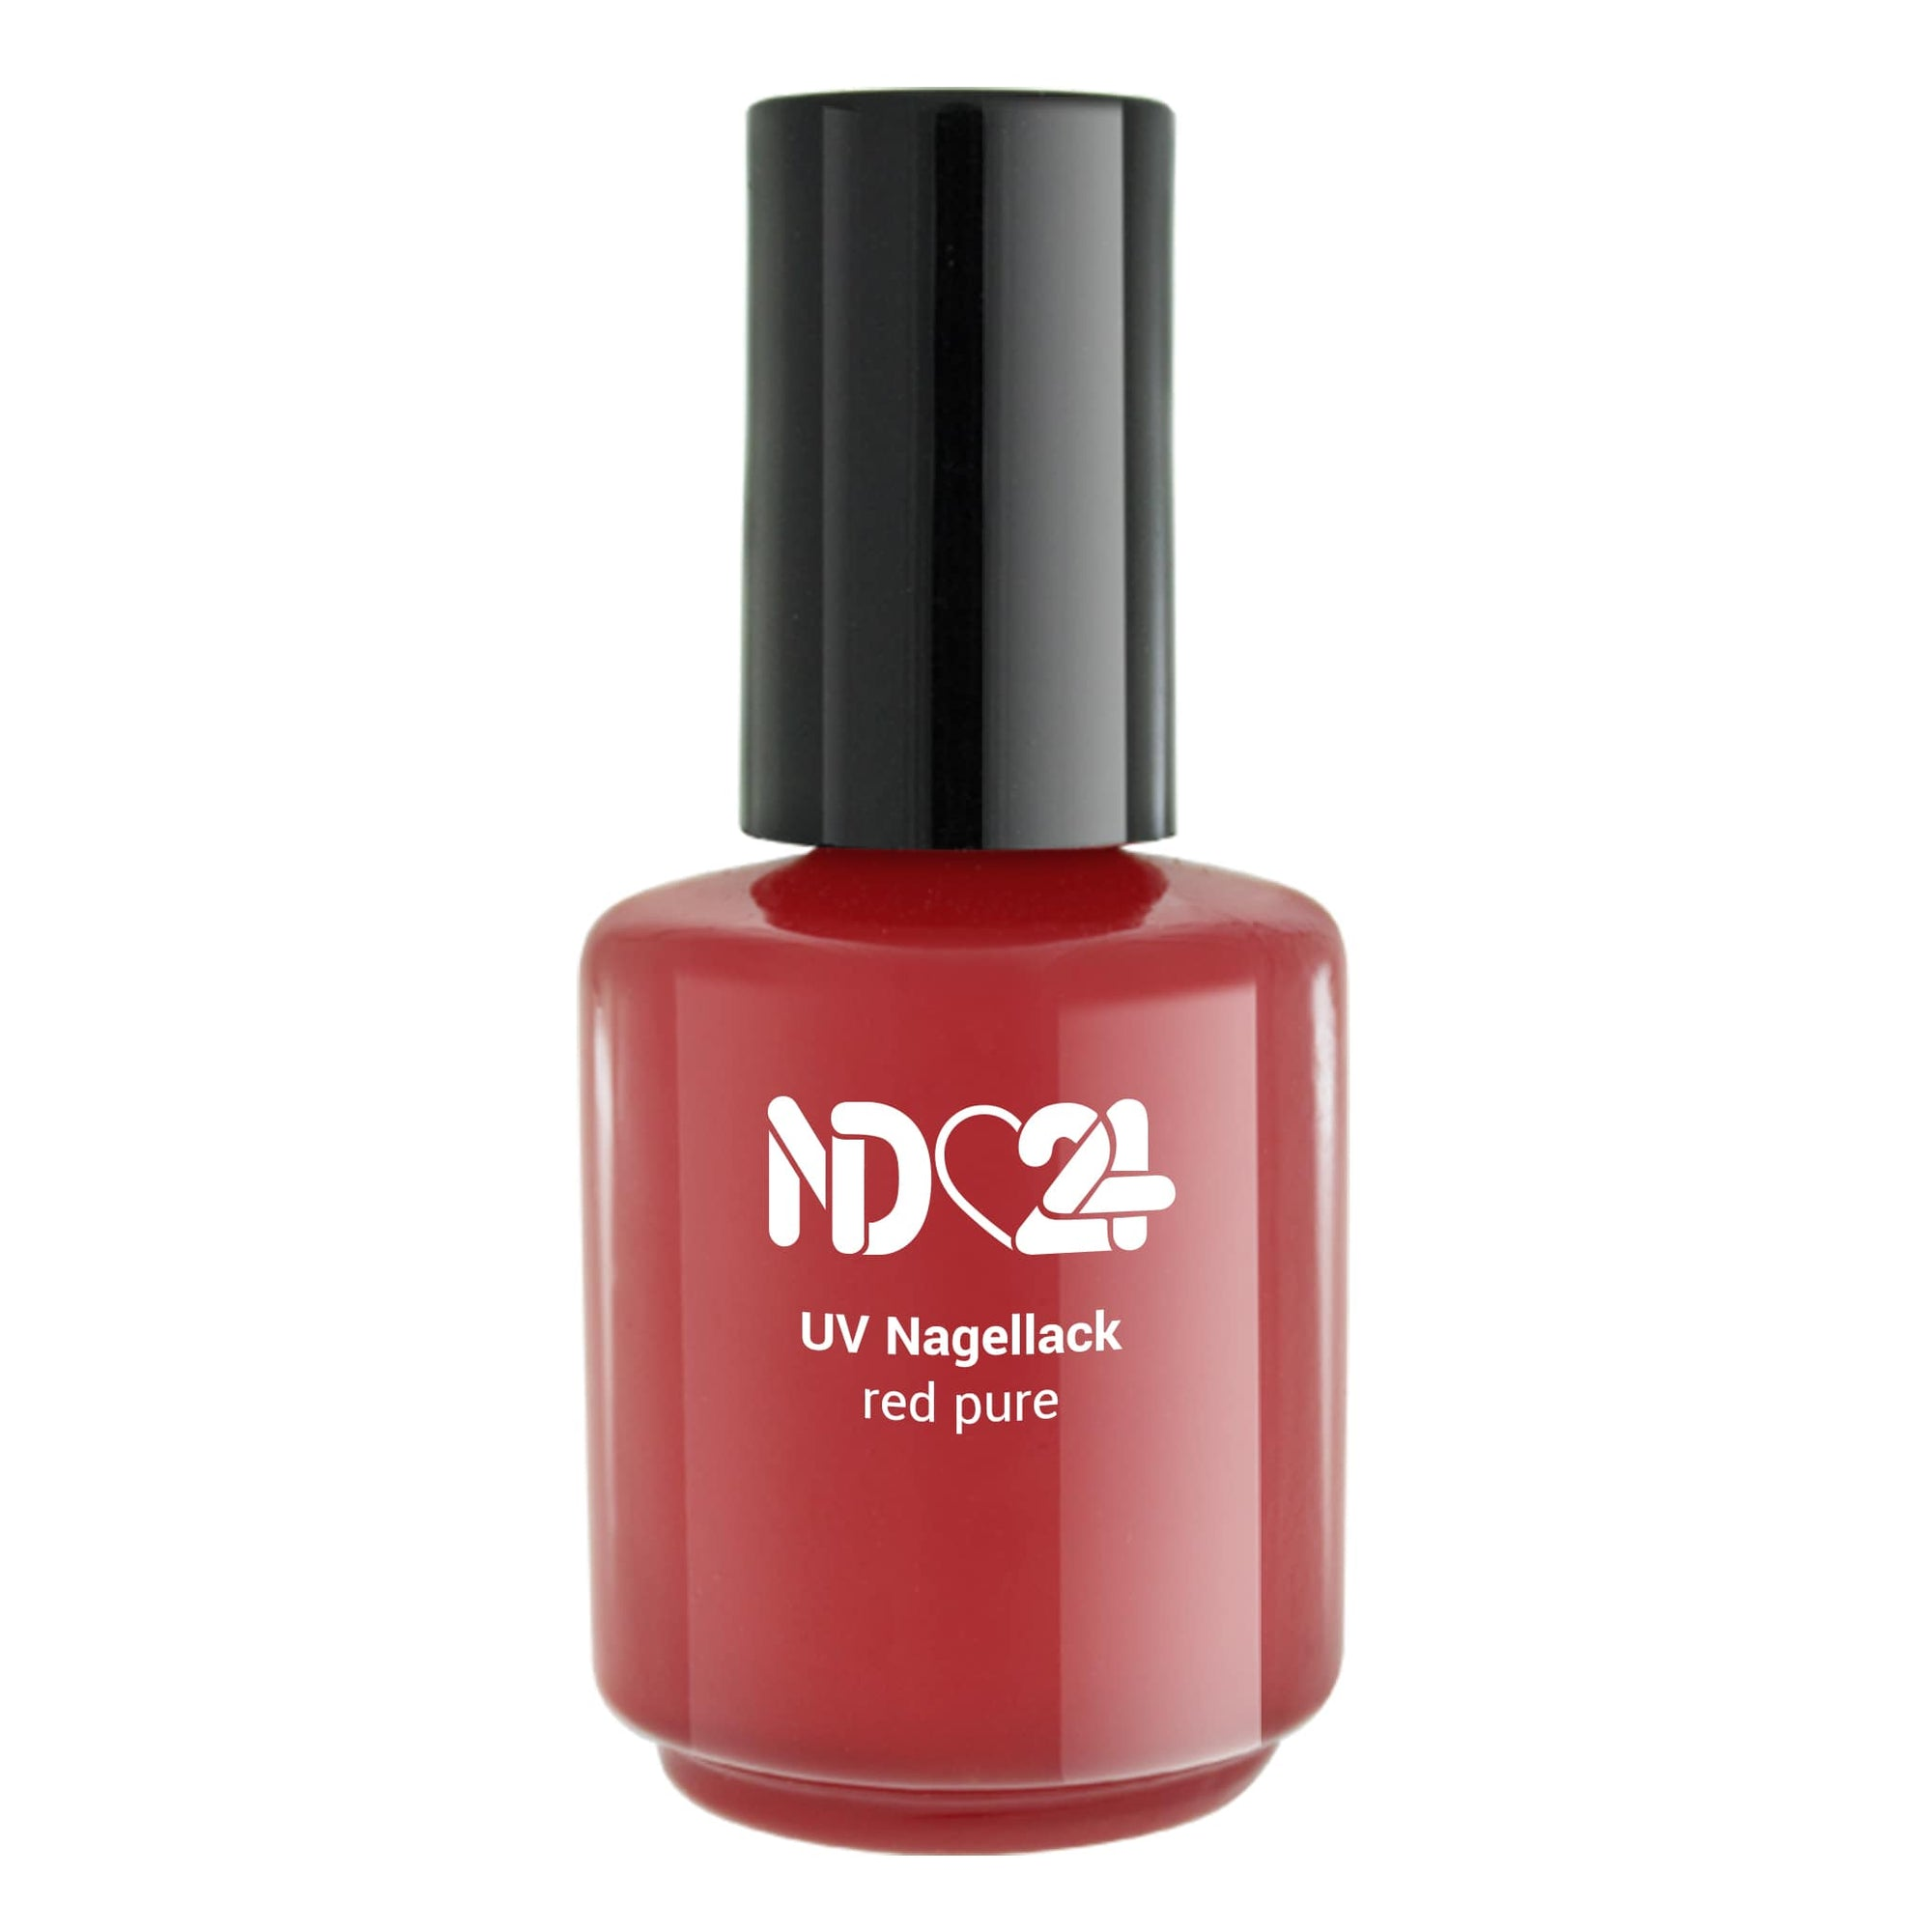 UV Nagellack Red pure